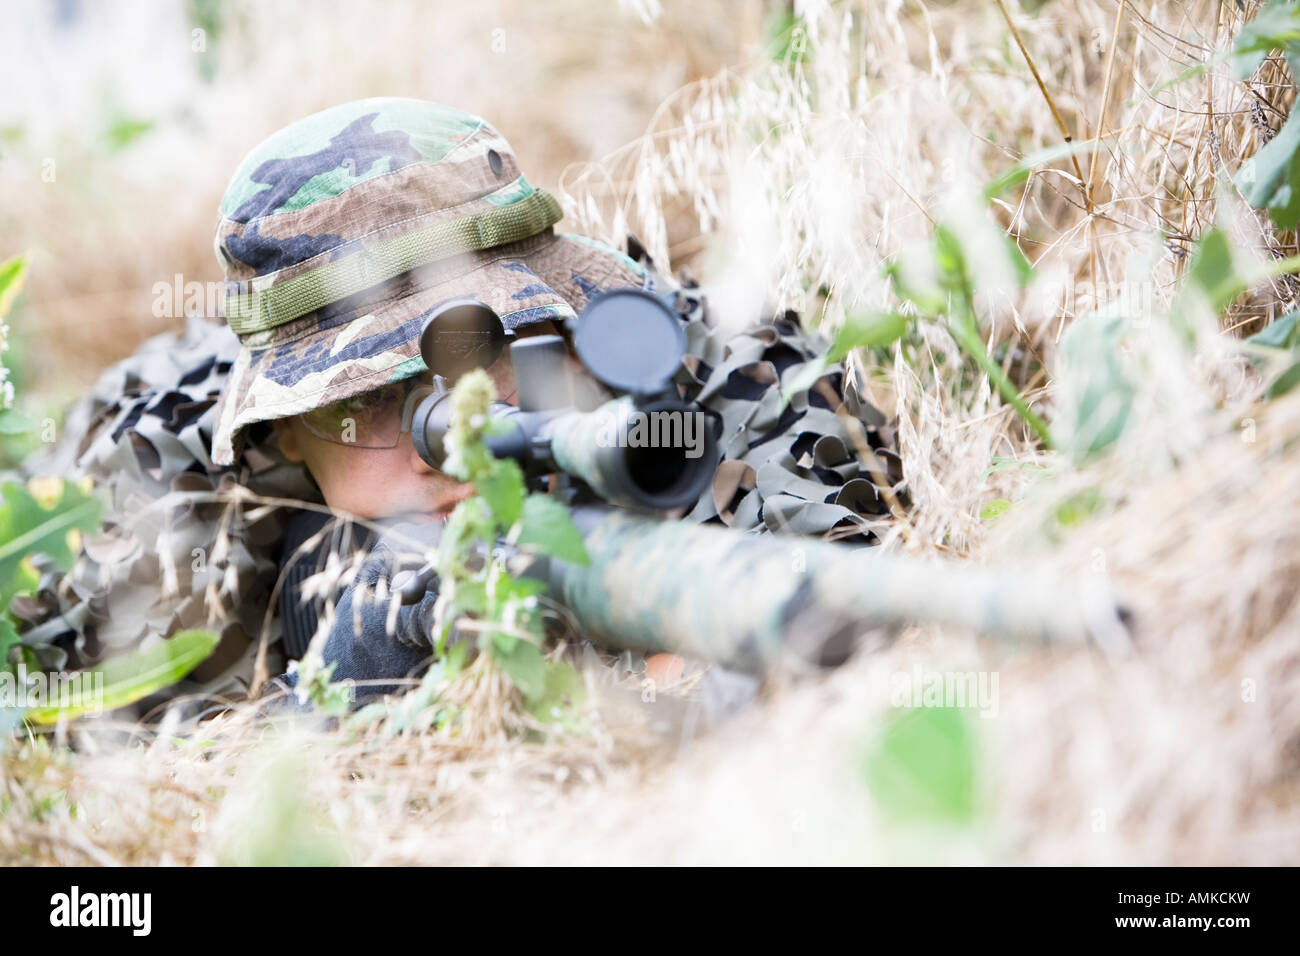 SORT, prison SWAT team, sniper in position observing a target. SORT typically handle very serious situations such - Stock Image